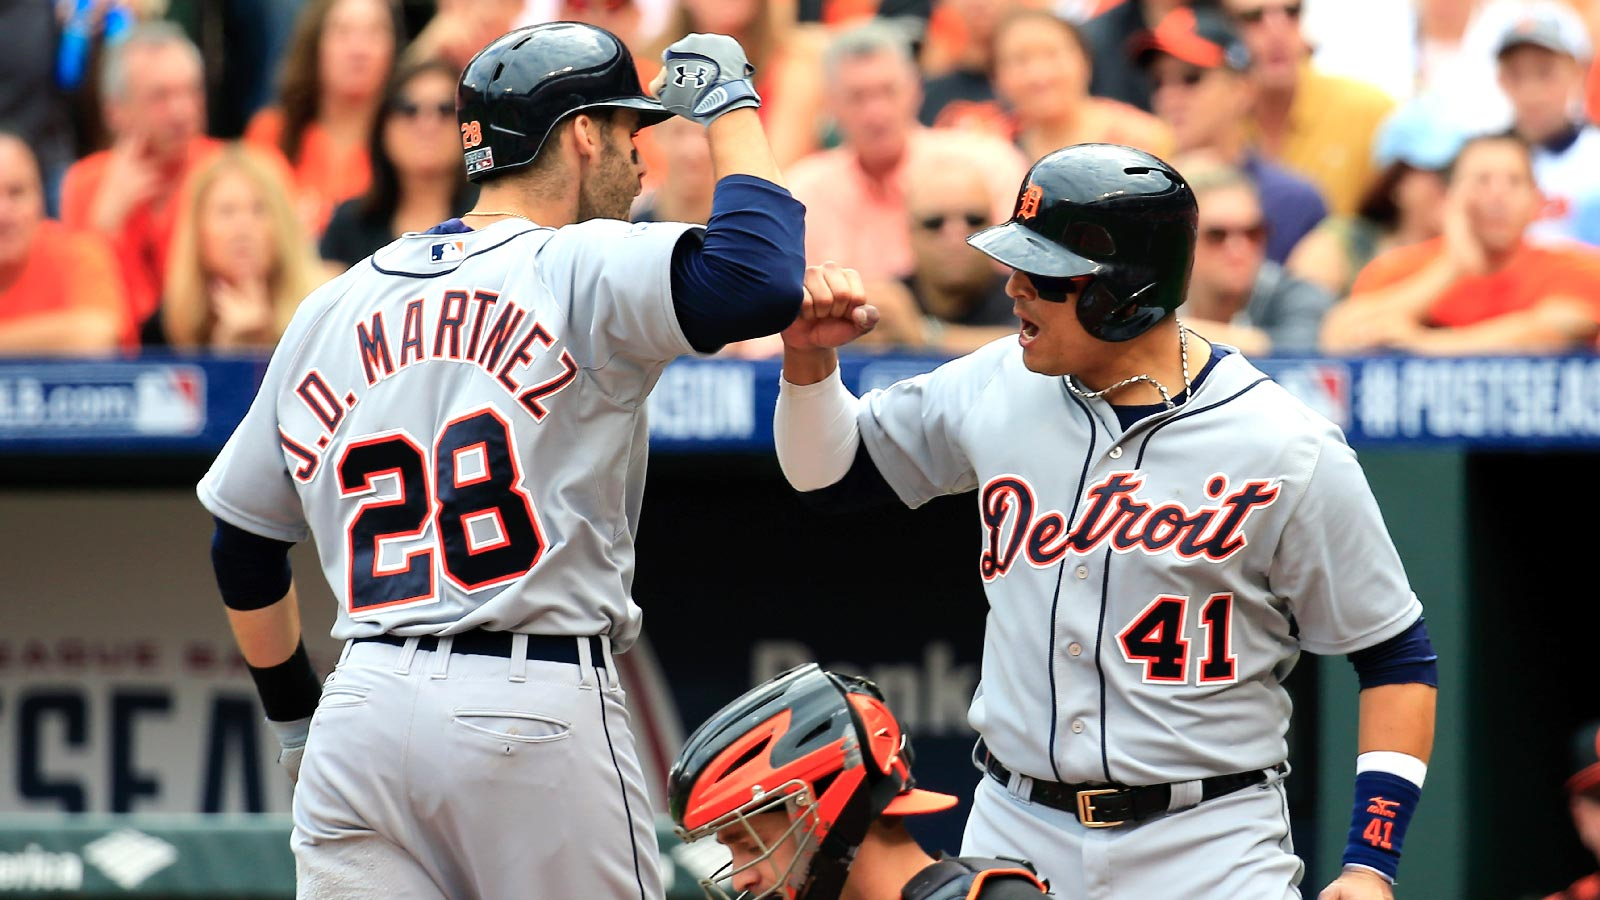 Tigers offseason preview: Find some pitching, extend J.D. Martinez